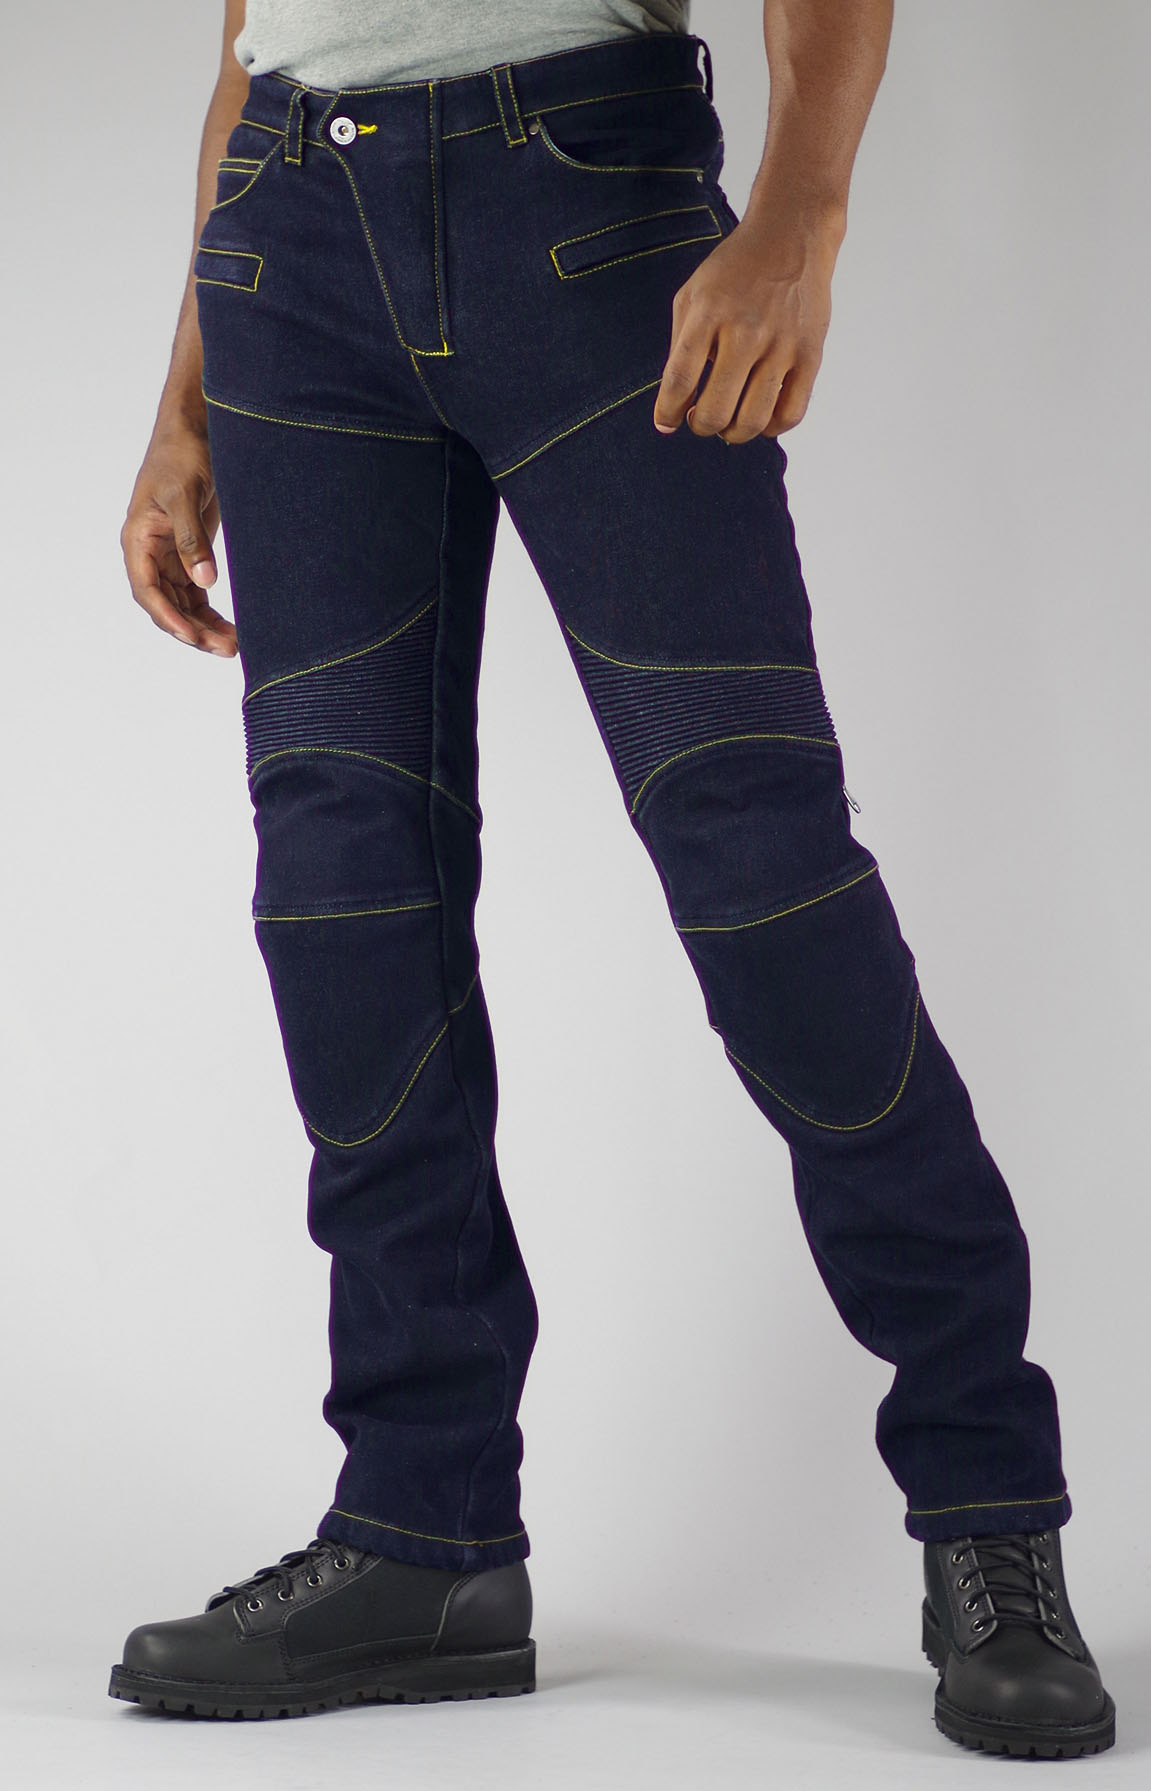 KOMINE WJ-921S Super Fit Jeans Denim Chaud Femmes